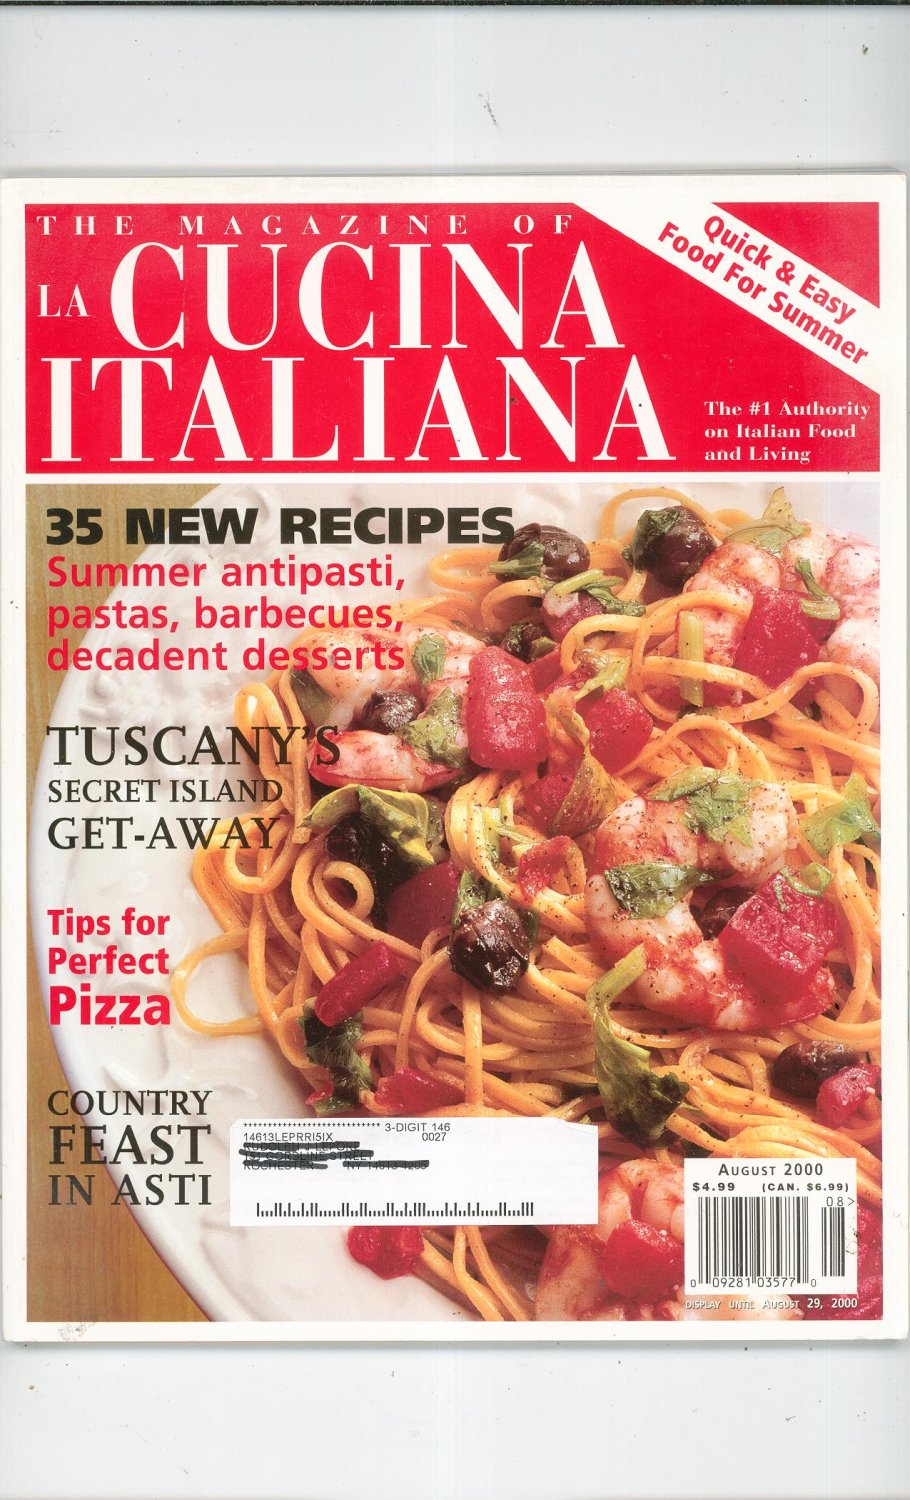 The Magazine Of La Cucina Italiana The Magazine Of La Cucina Italiana July August 2000 Quick Easy Food For Summer Back Issue Not Pdf